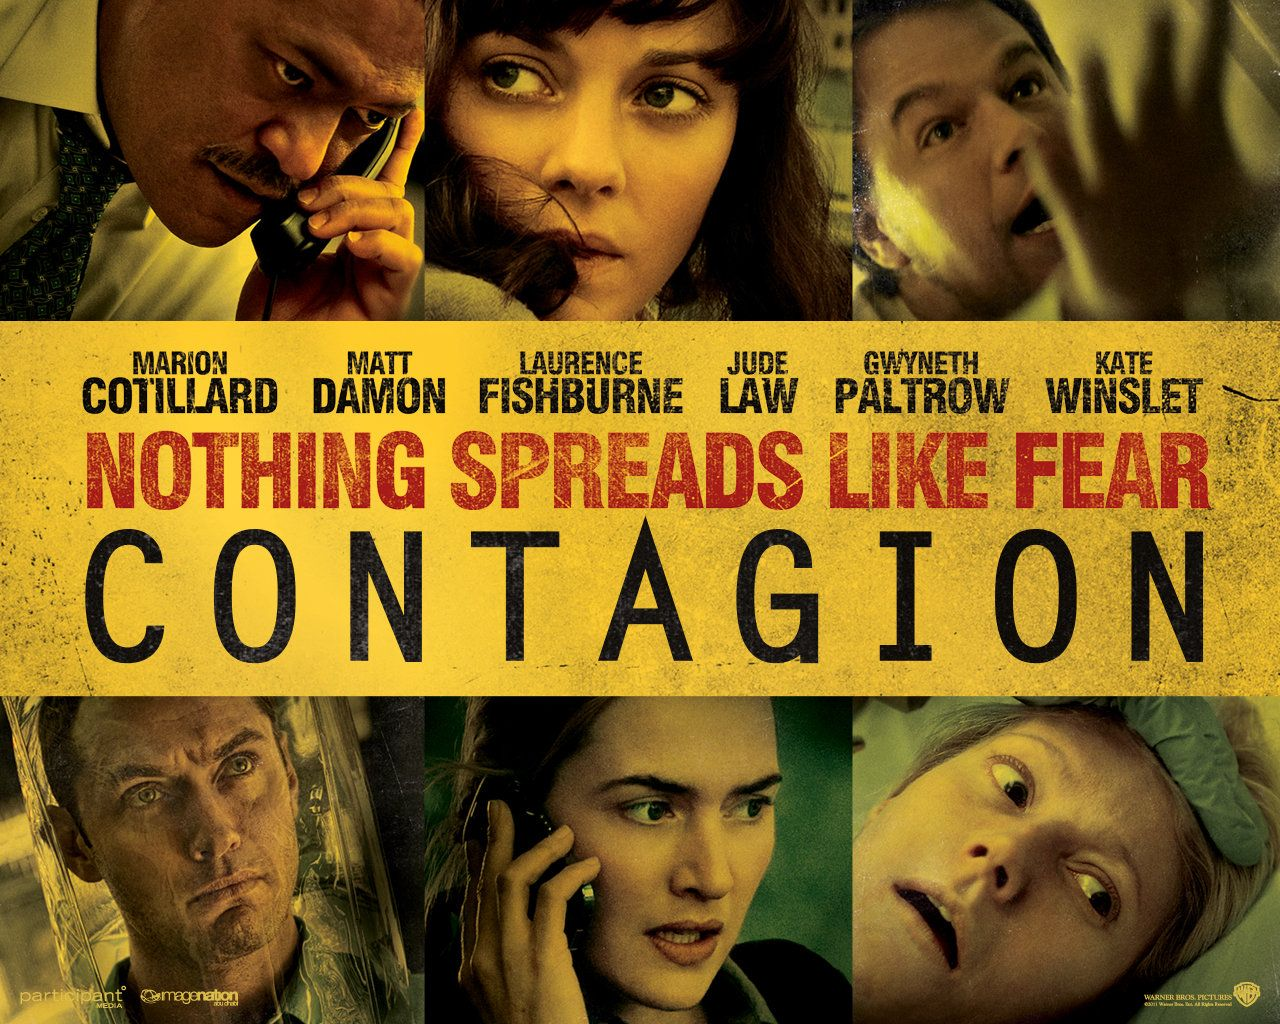 http://4.bp.blogspot.com/-KtaBi9zg7qU/Tm4oujVujUI/AAAAAAAACBg/pdEYyZ7hnw0/s1600/contagion-movie-poster-photo.jpg